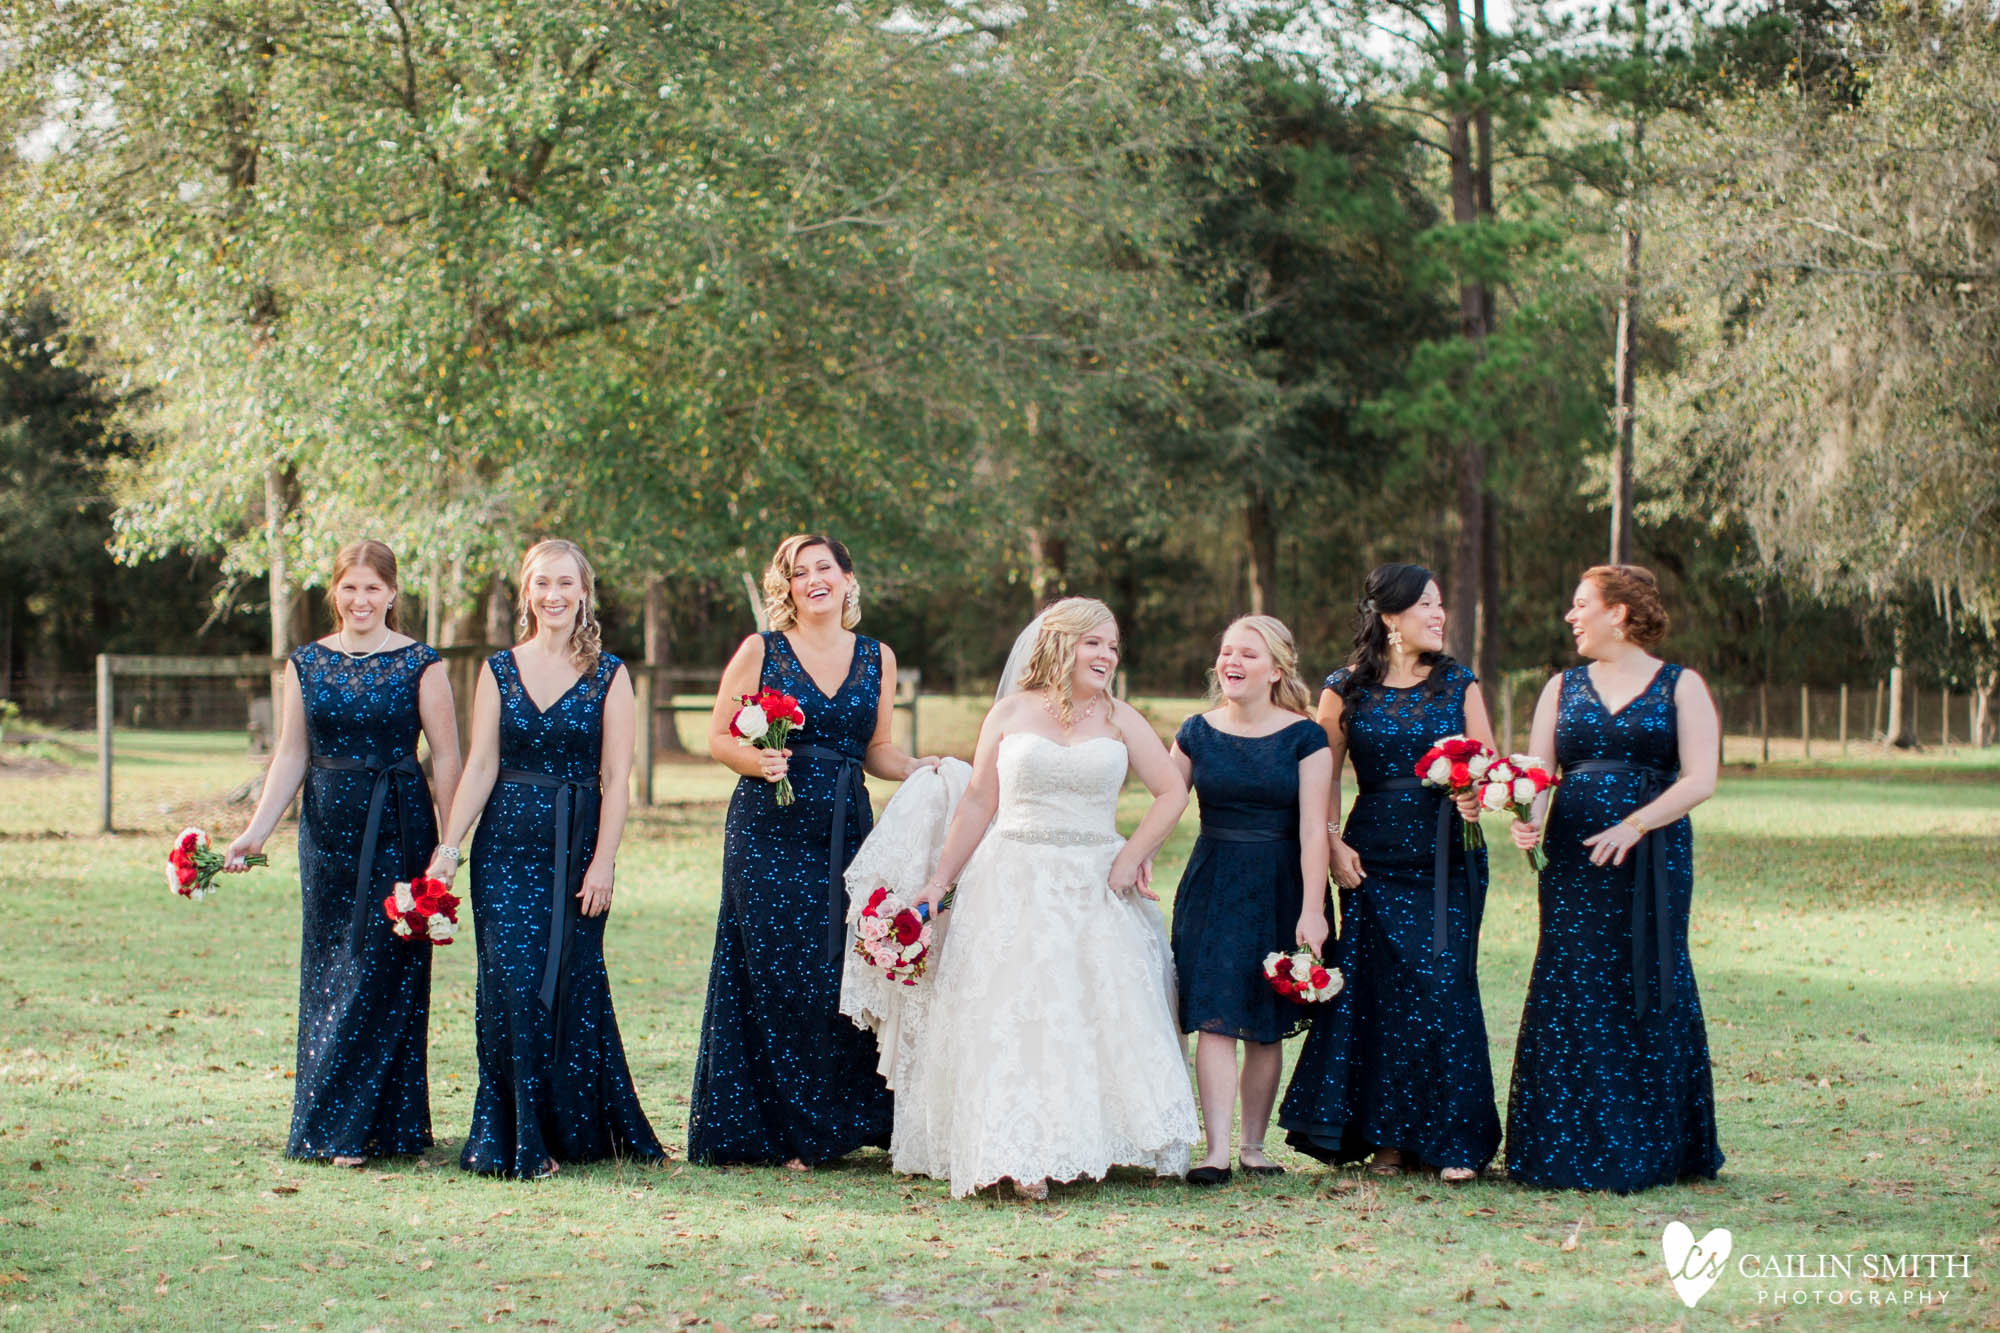 Christie_Nathan_Wedding_Photography_0044.jpg